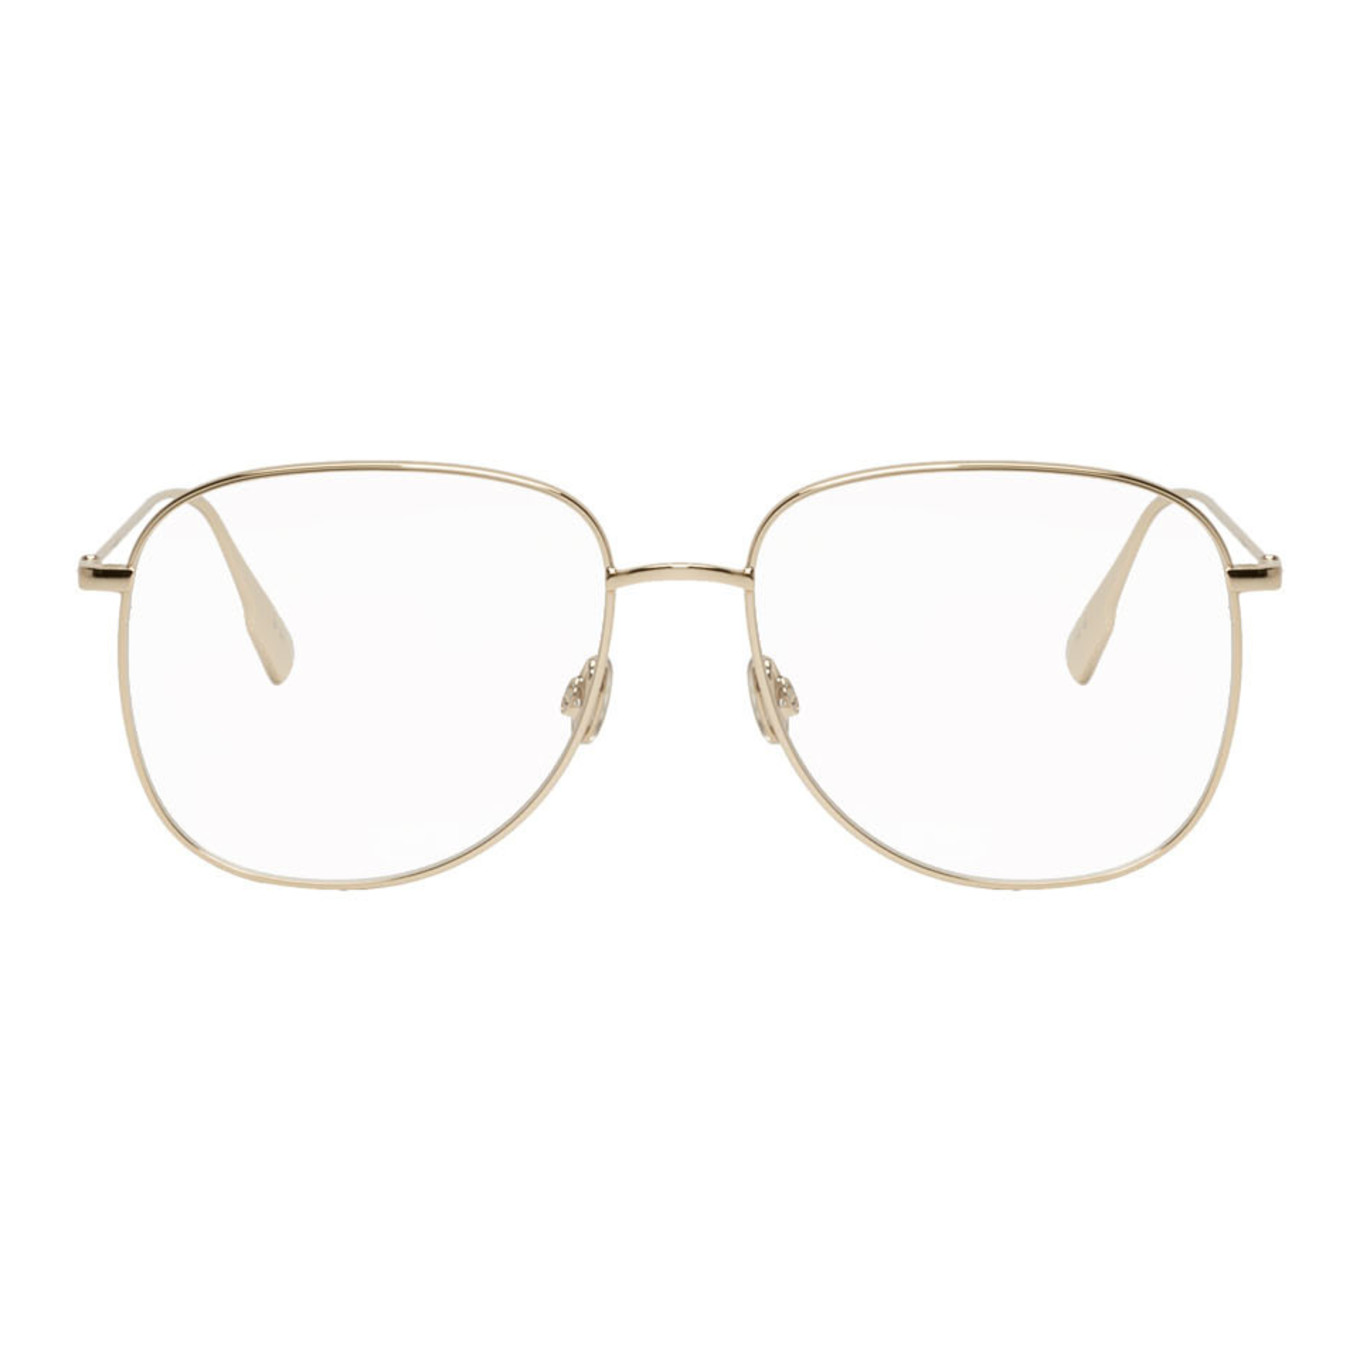 Gold Dior Stellaire8 Glasses by Dior